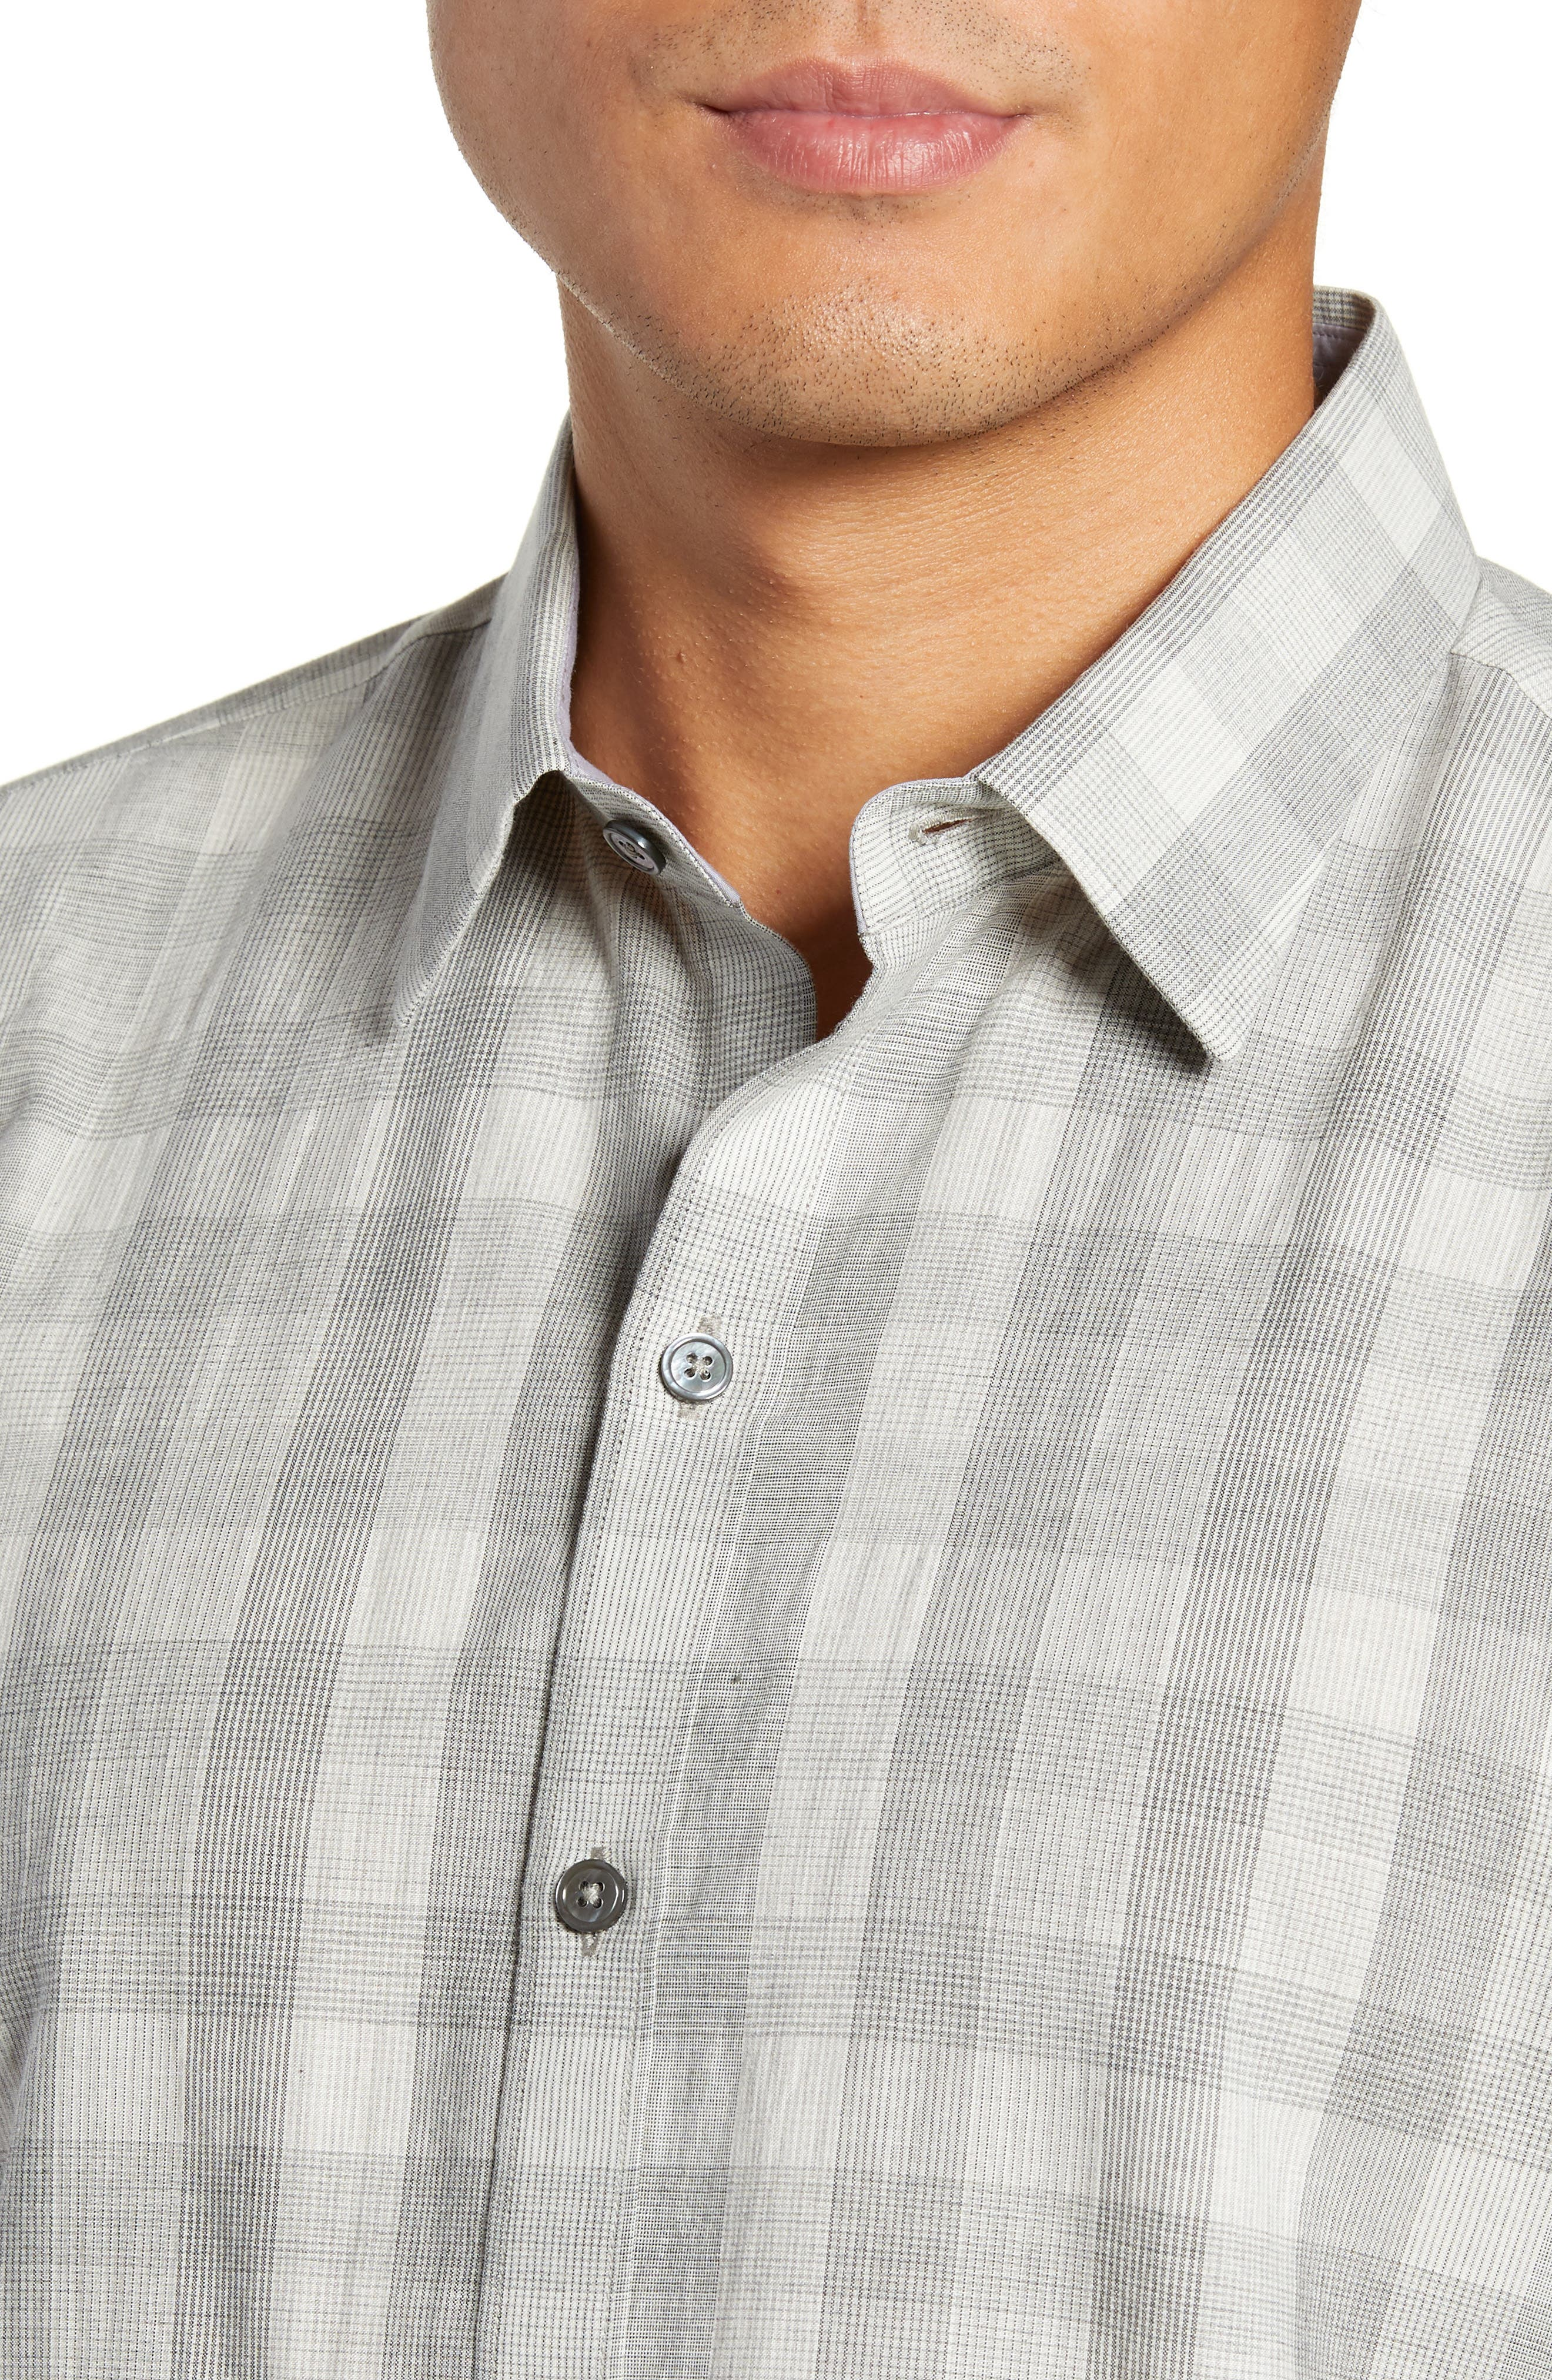 Minch Regular Fit Sport Shirt,                             Alternate thumbnail 2, color,                             050